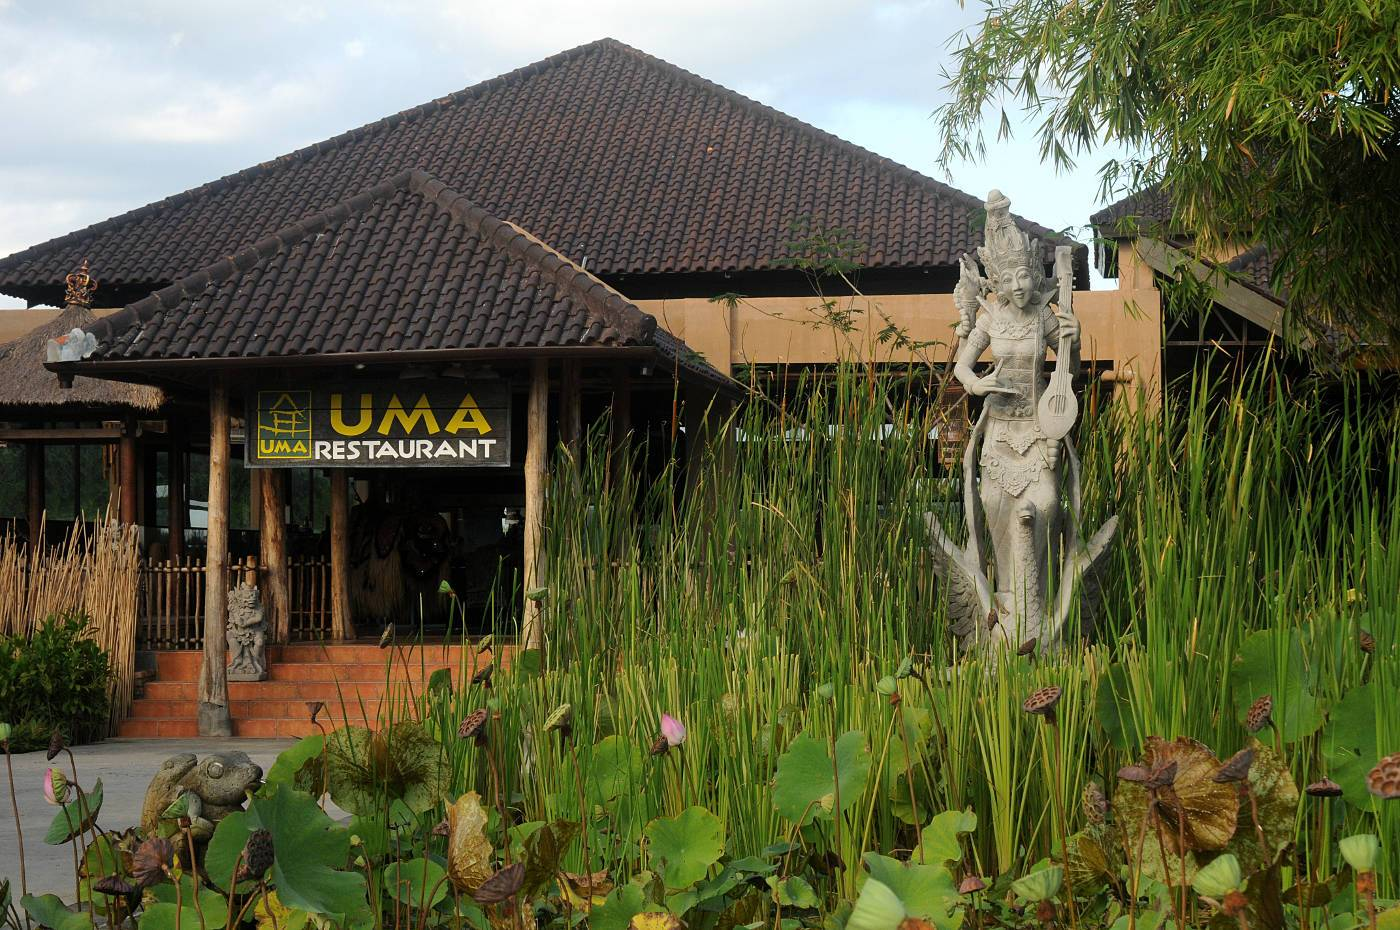 Uma Restaurant Mara River Safari Lodge Bali Safari